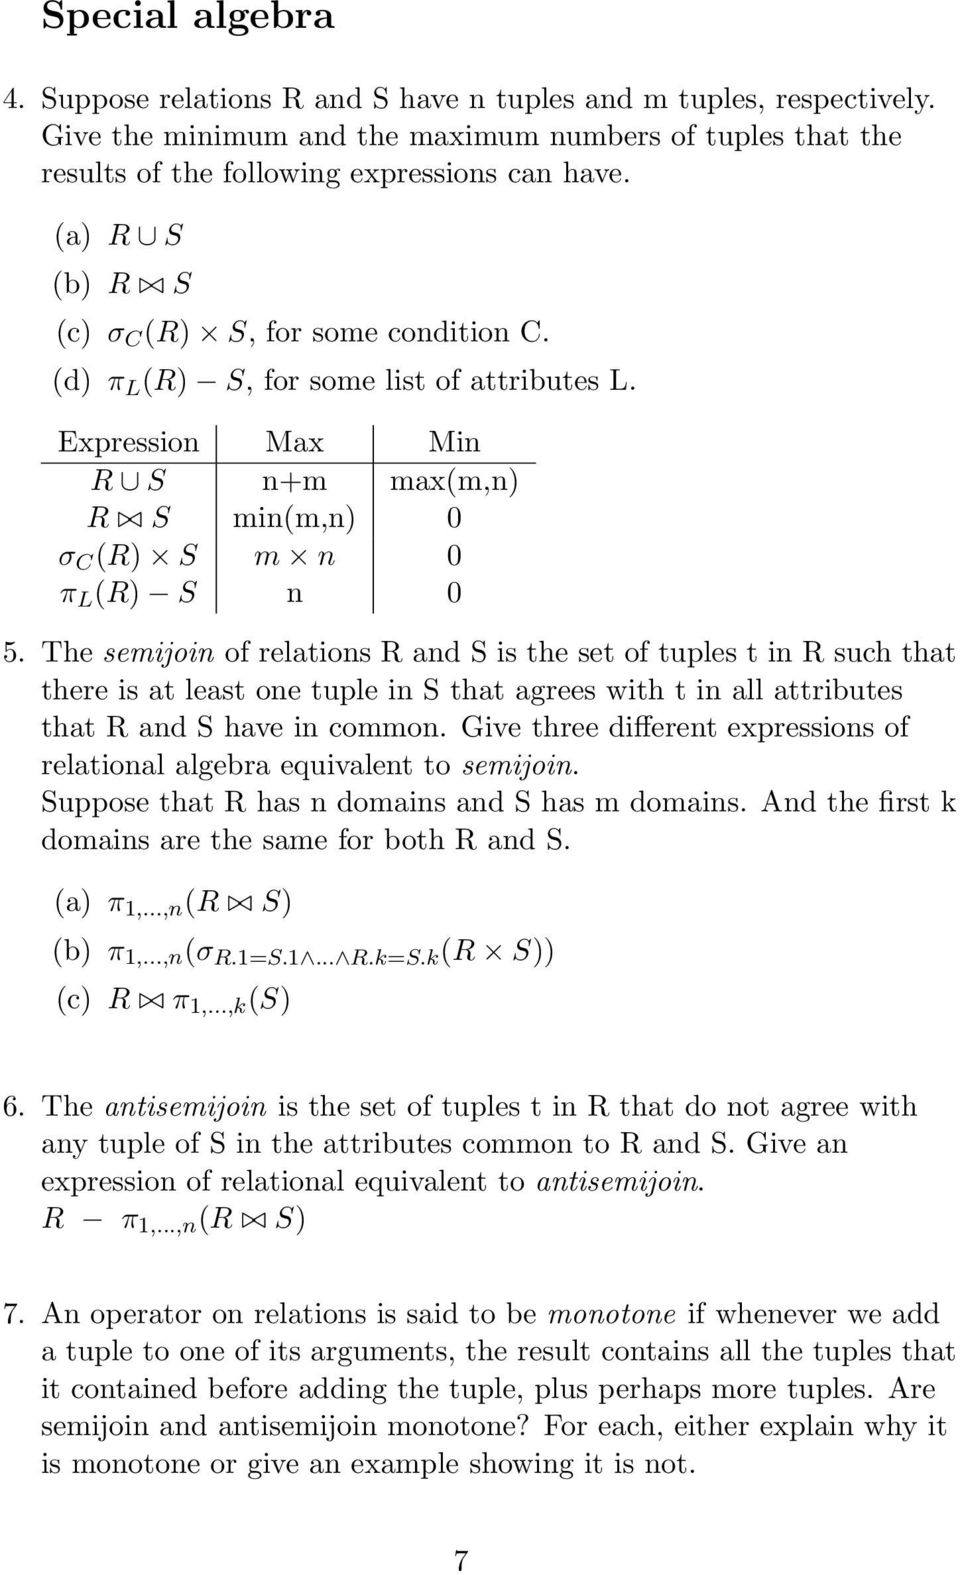 relational algebra queries examples with solutions pdf